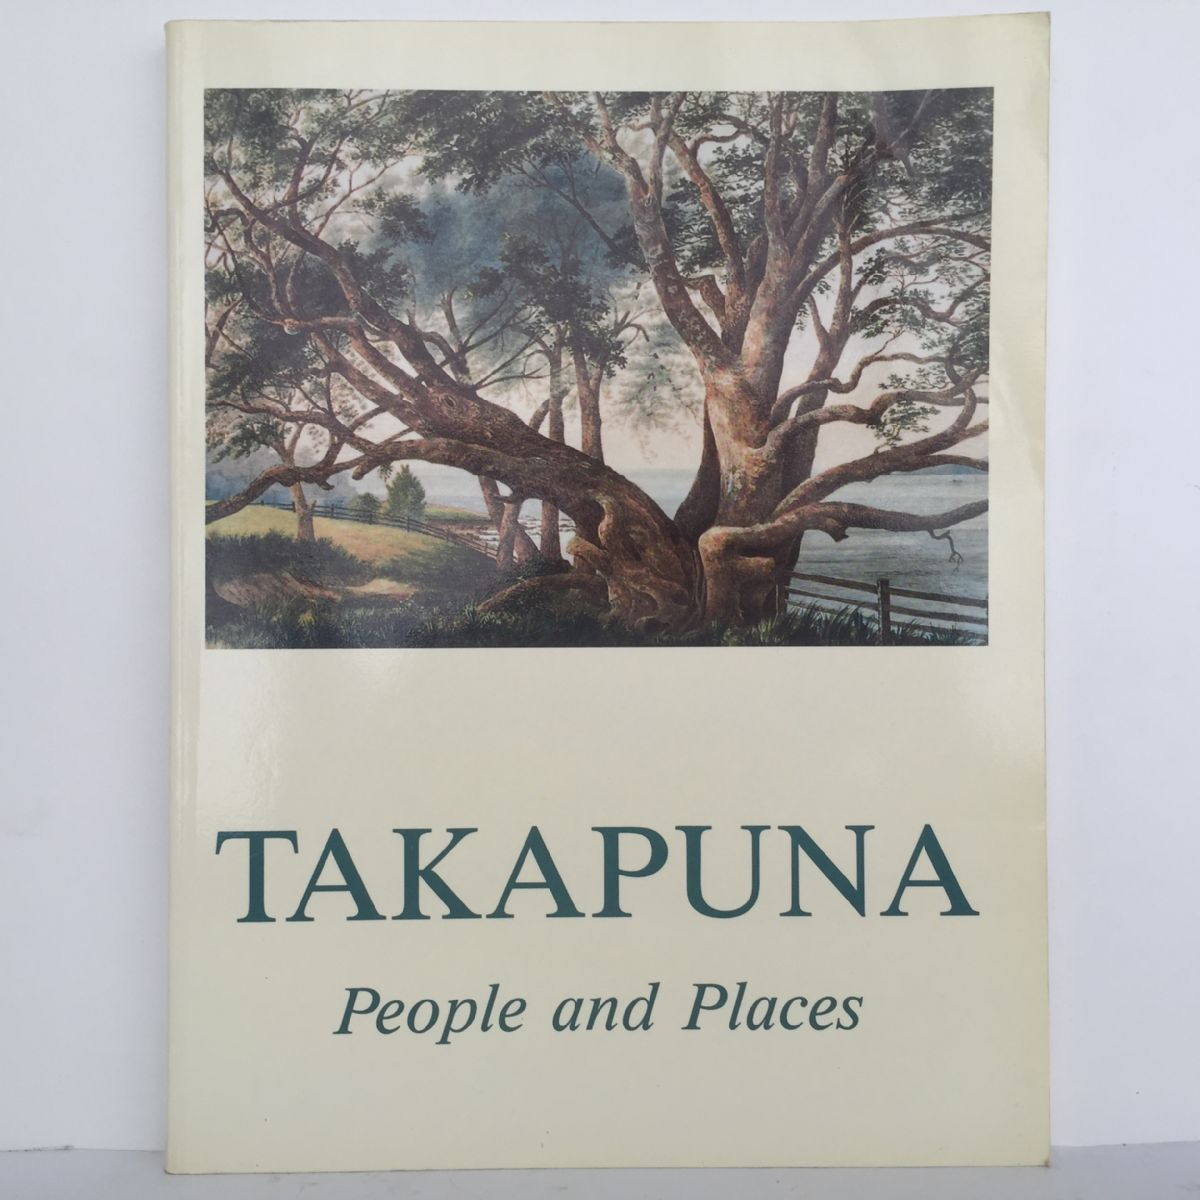 Takapuna: People and Places